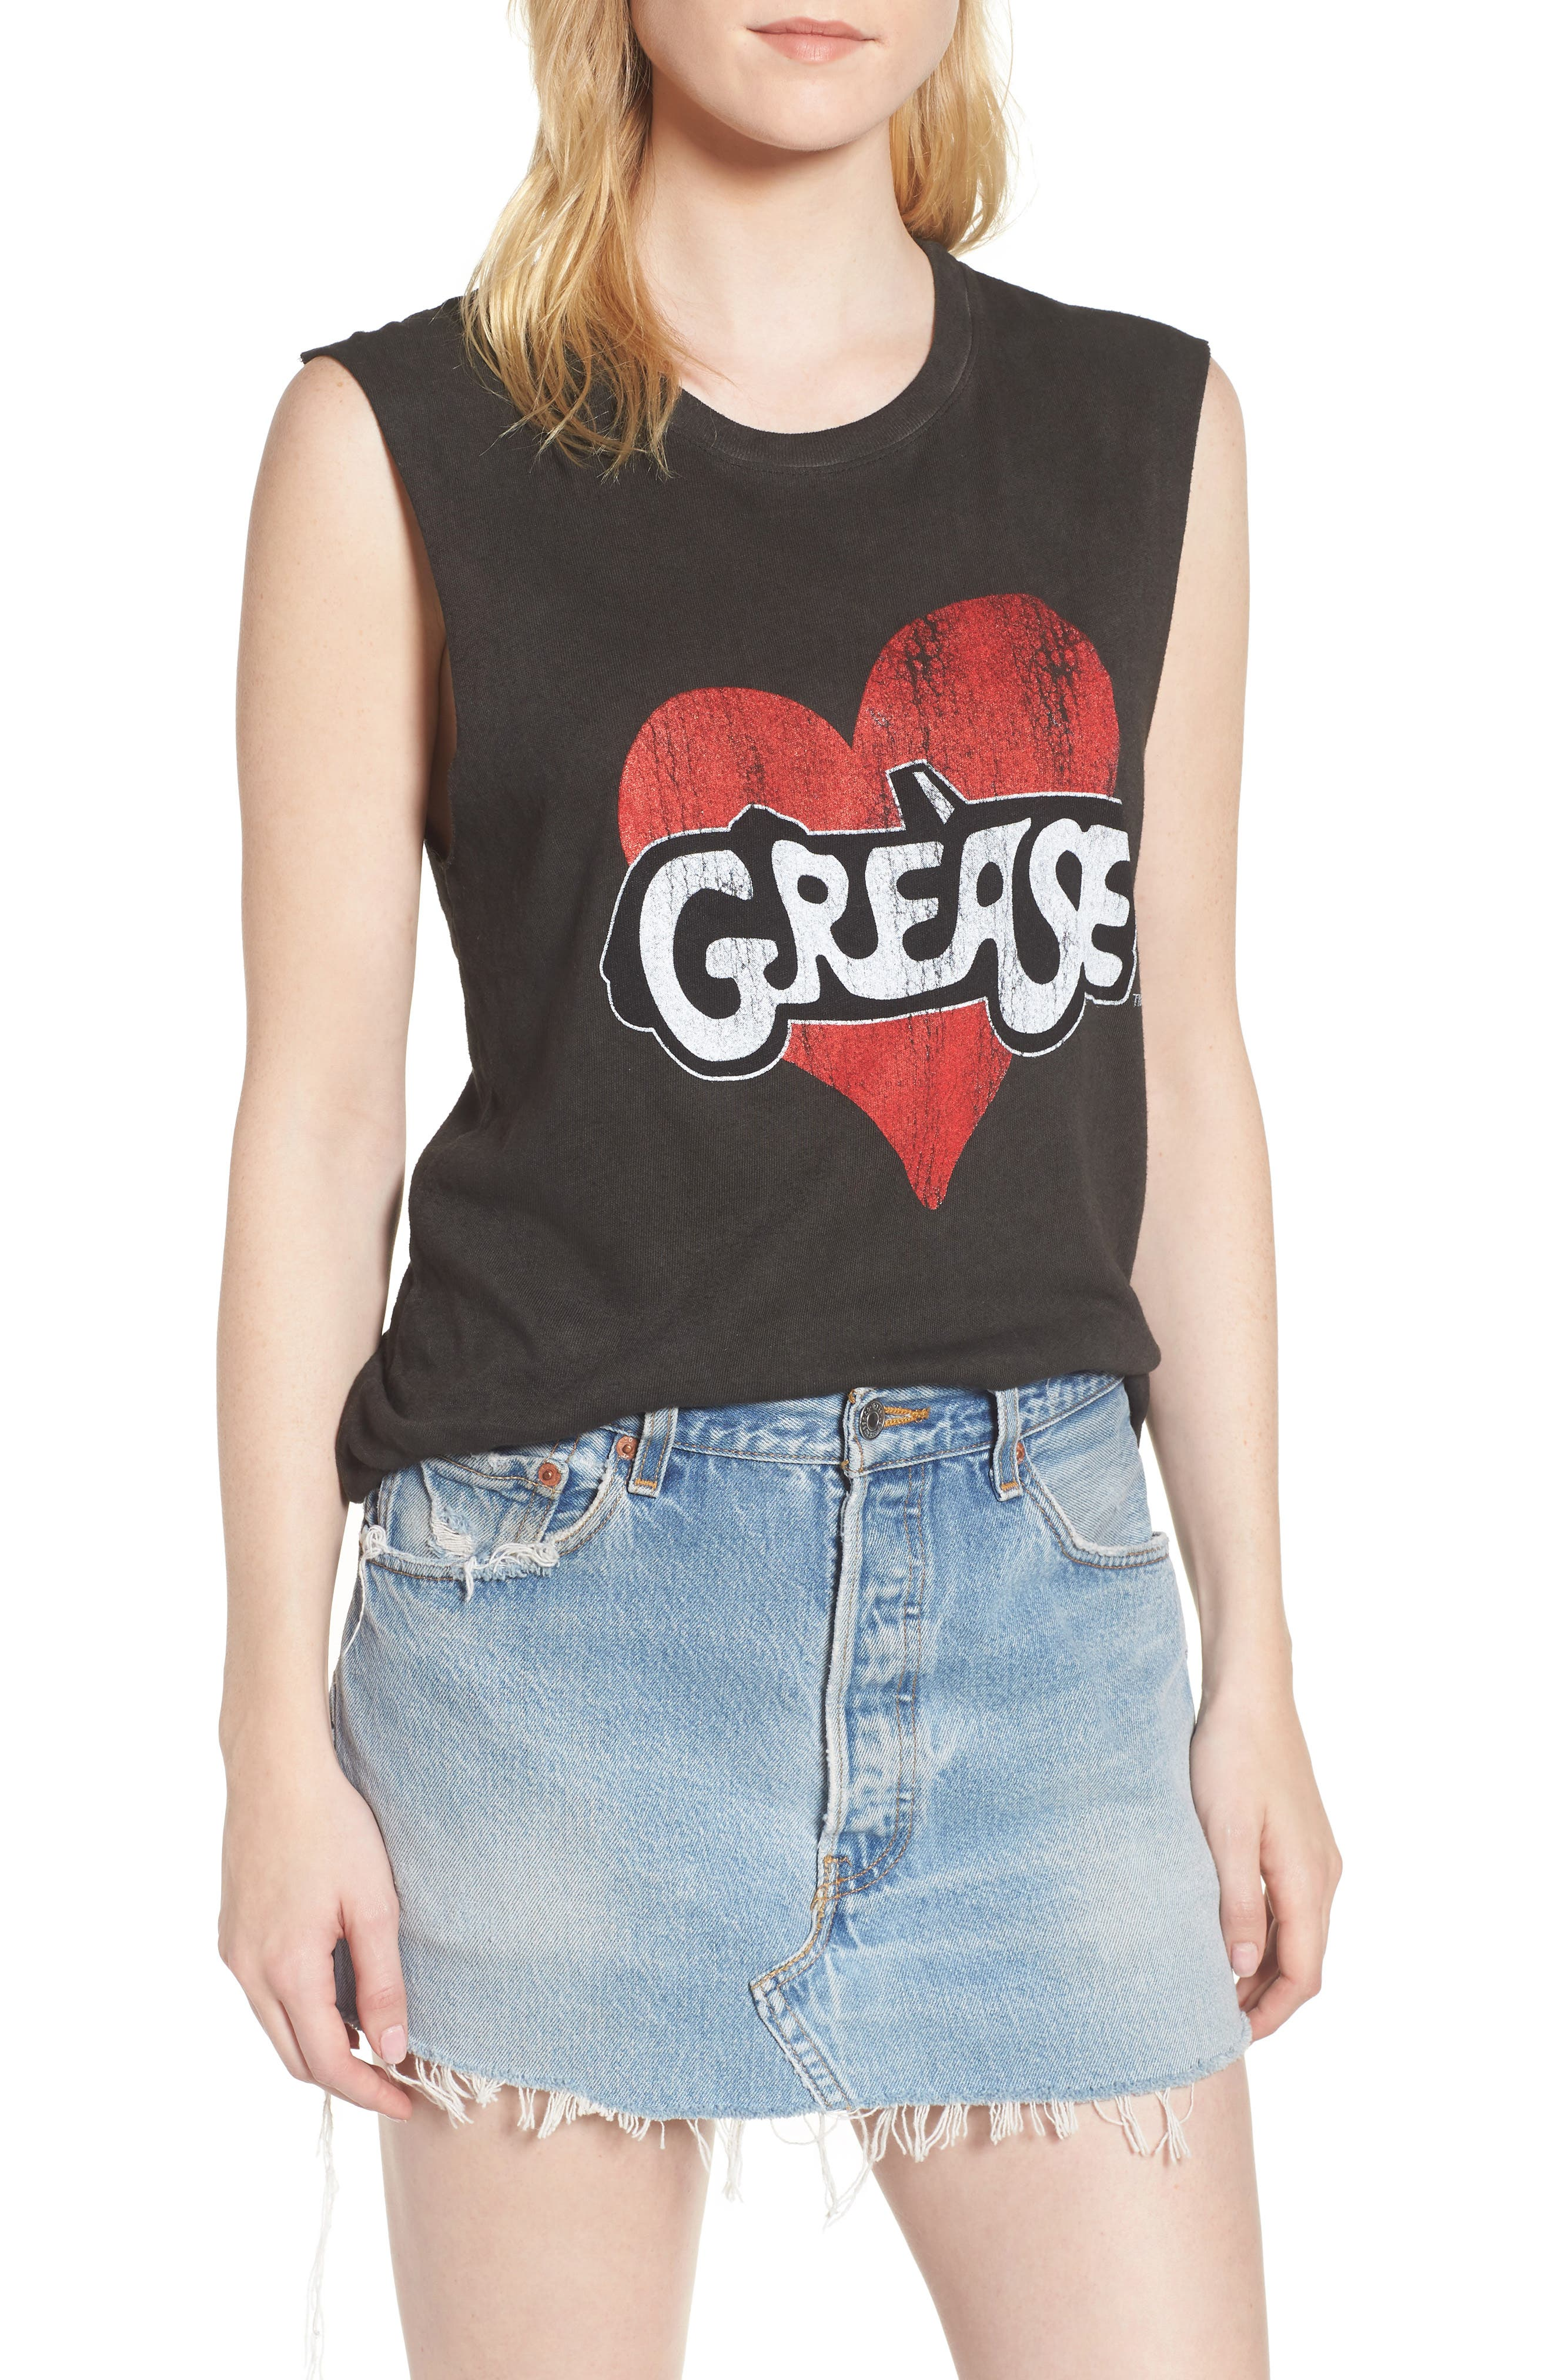 x Grease Muscle Tee,                         Main,                         color, Vintage Black